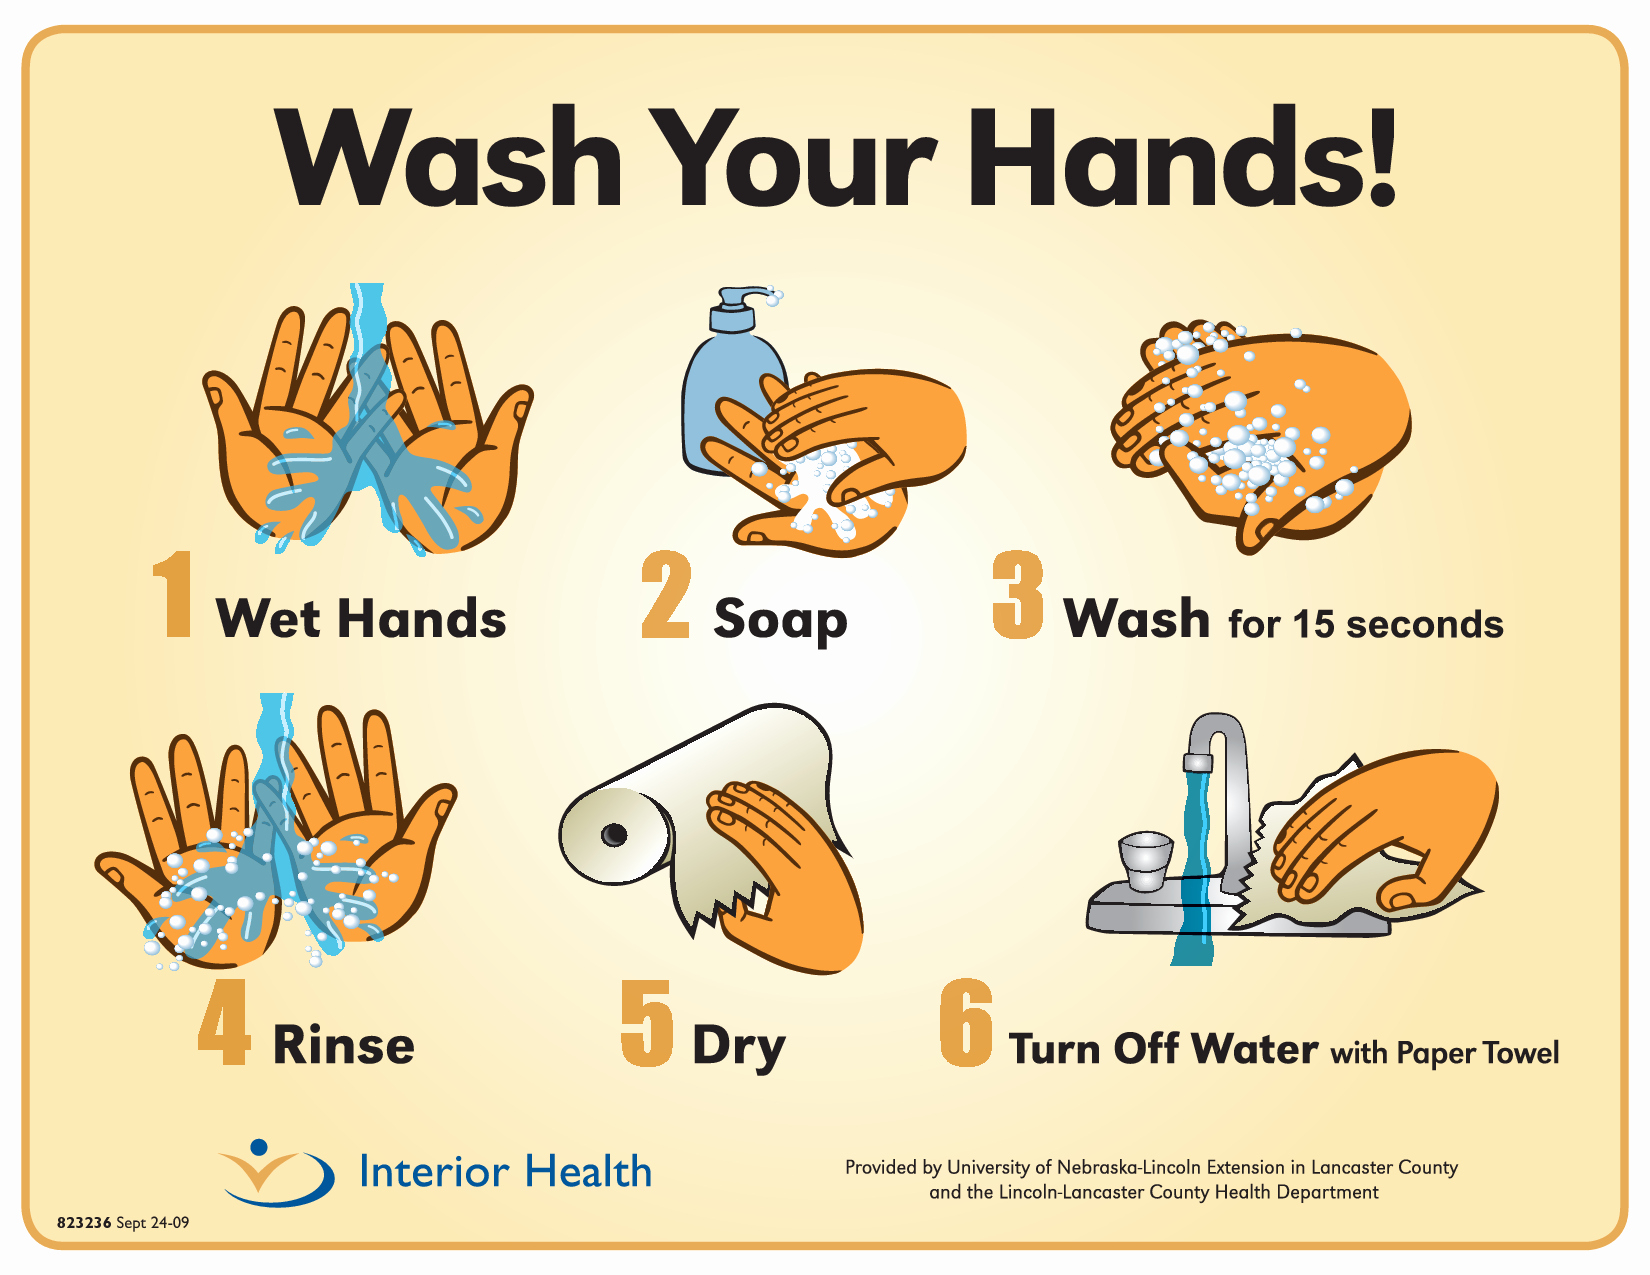 Free Printable Hand Washing Posters Templates - Tduck.ca - Free Printable Hand Washing Posters